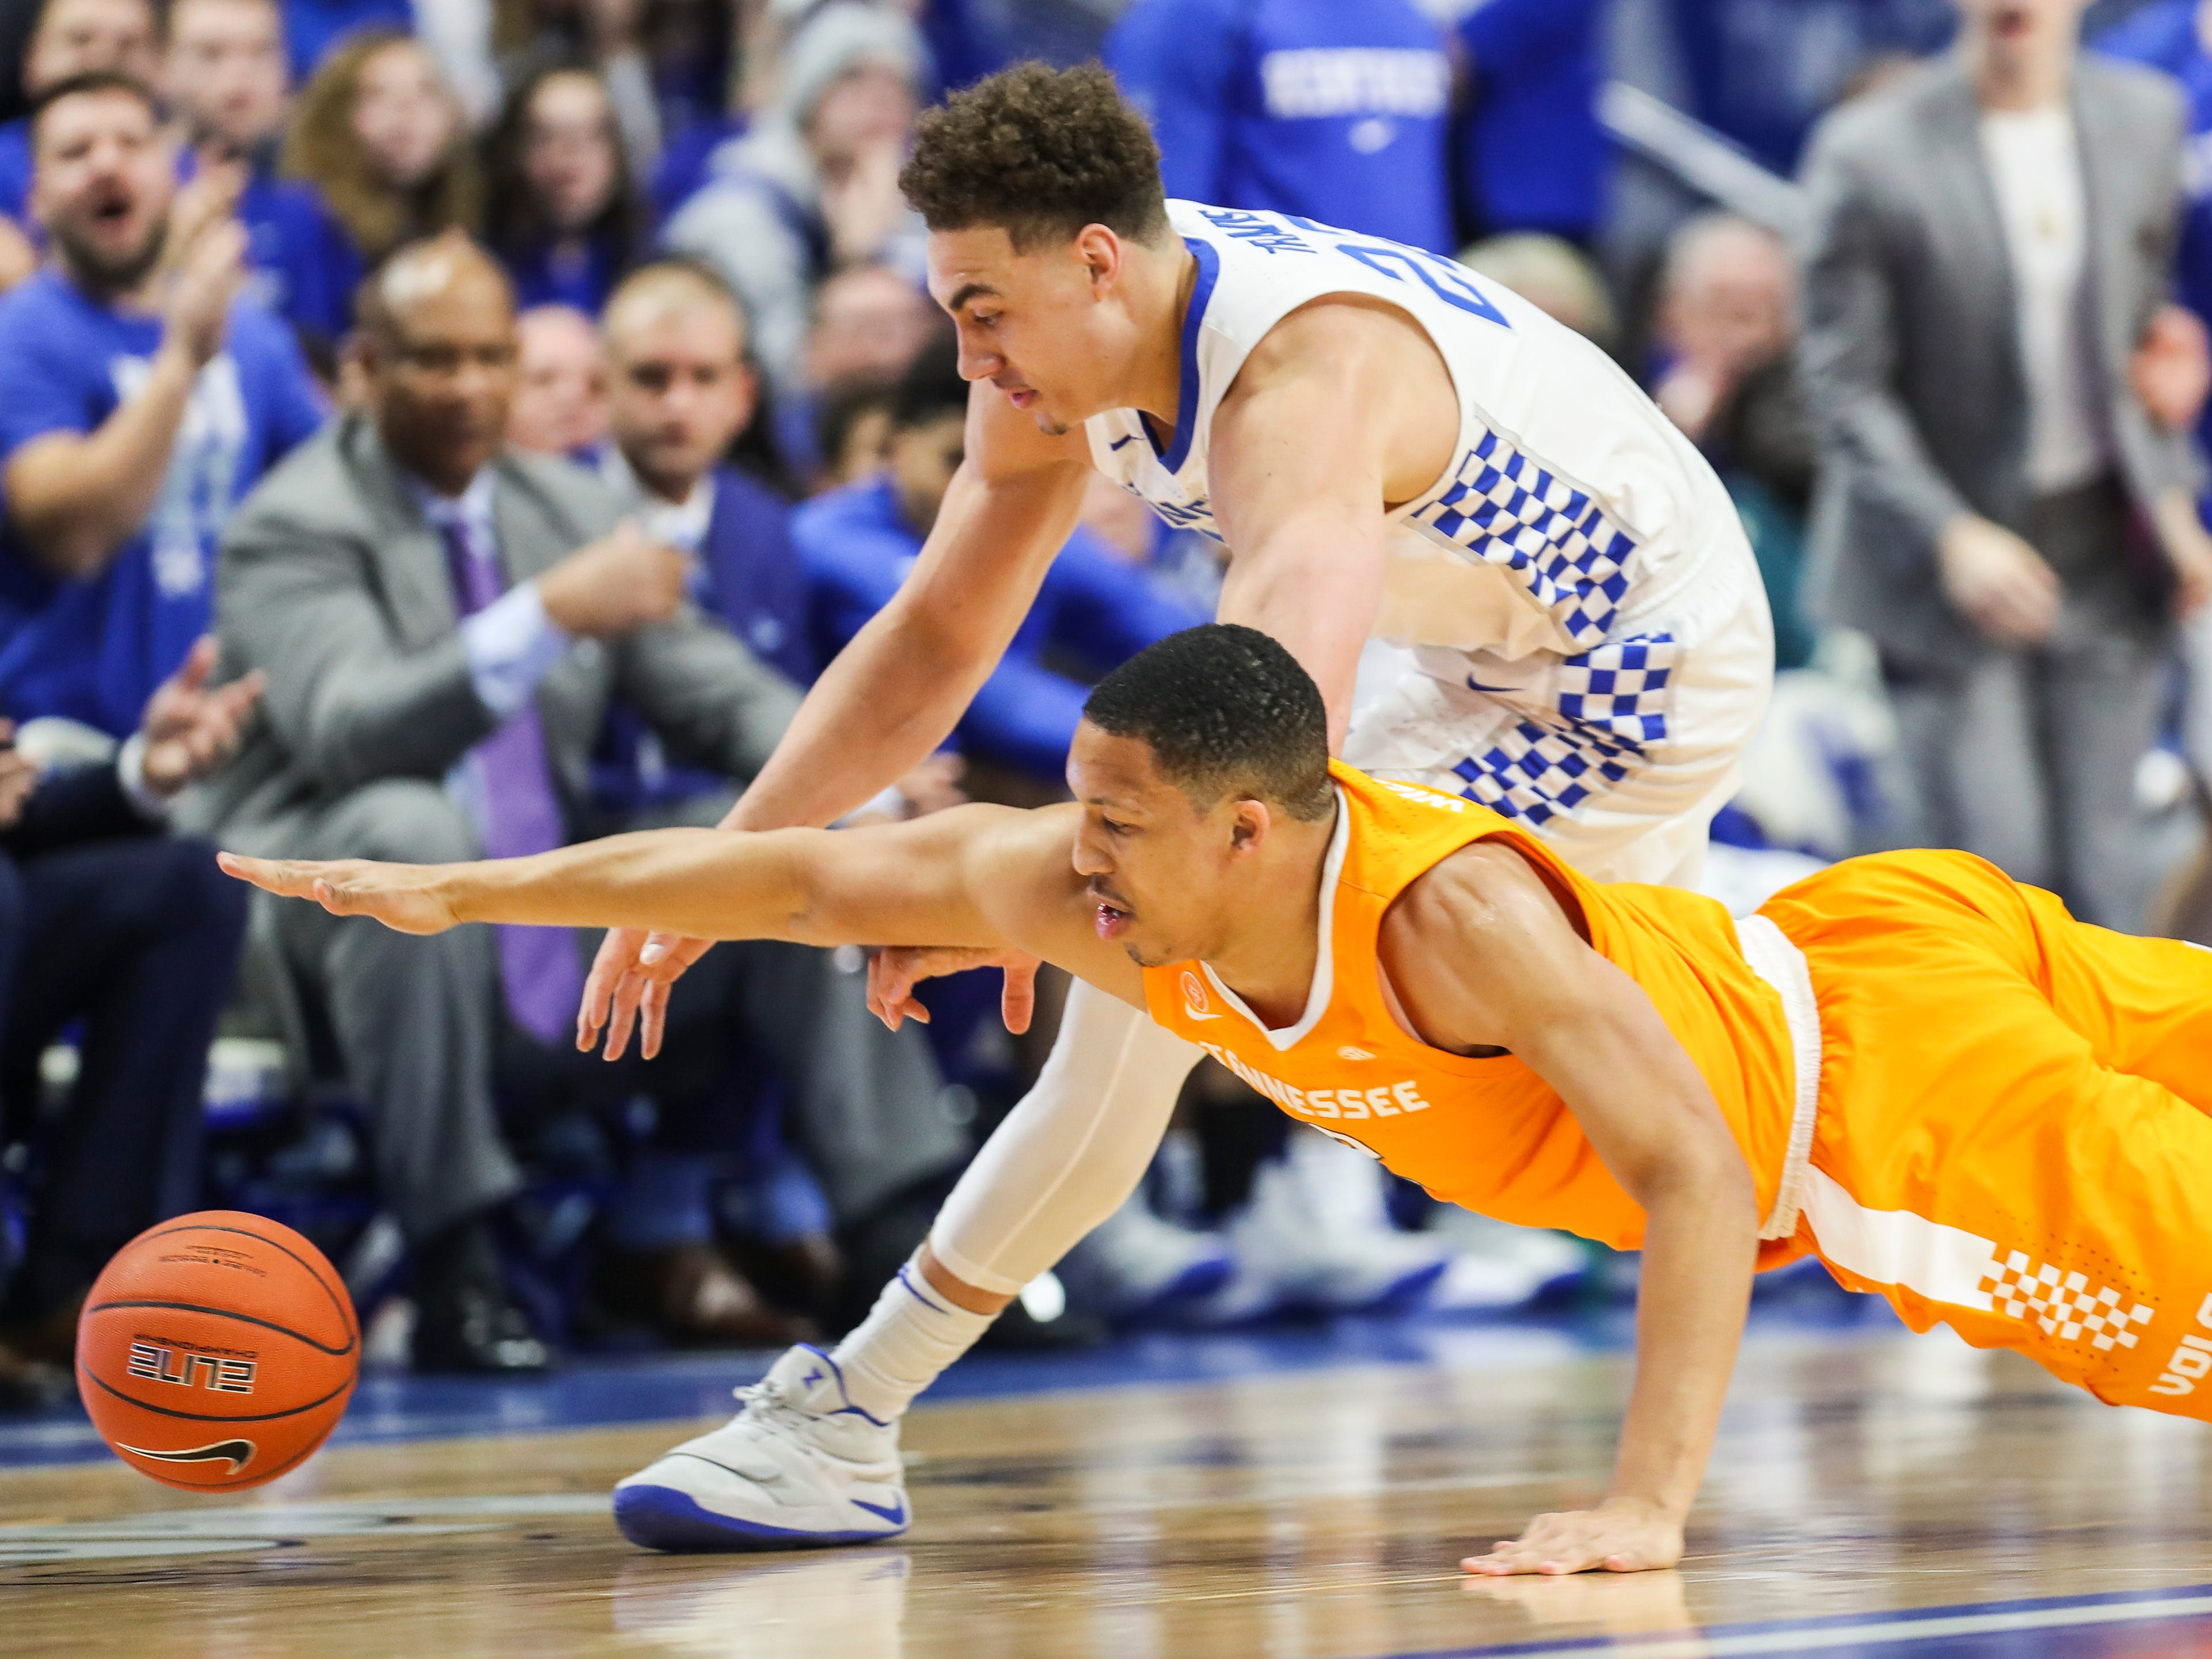 Tennessee's Grant Williams and Kentucky's Reid Travis scramble for a loose ball in the first half. Feb. 16, 2019